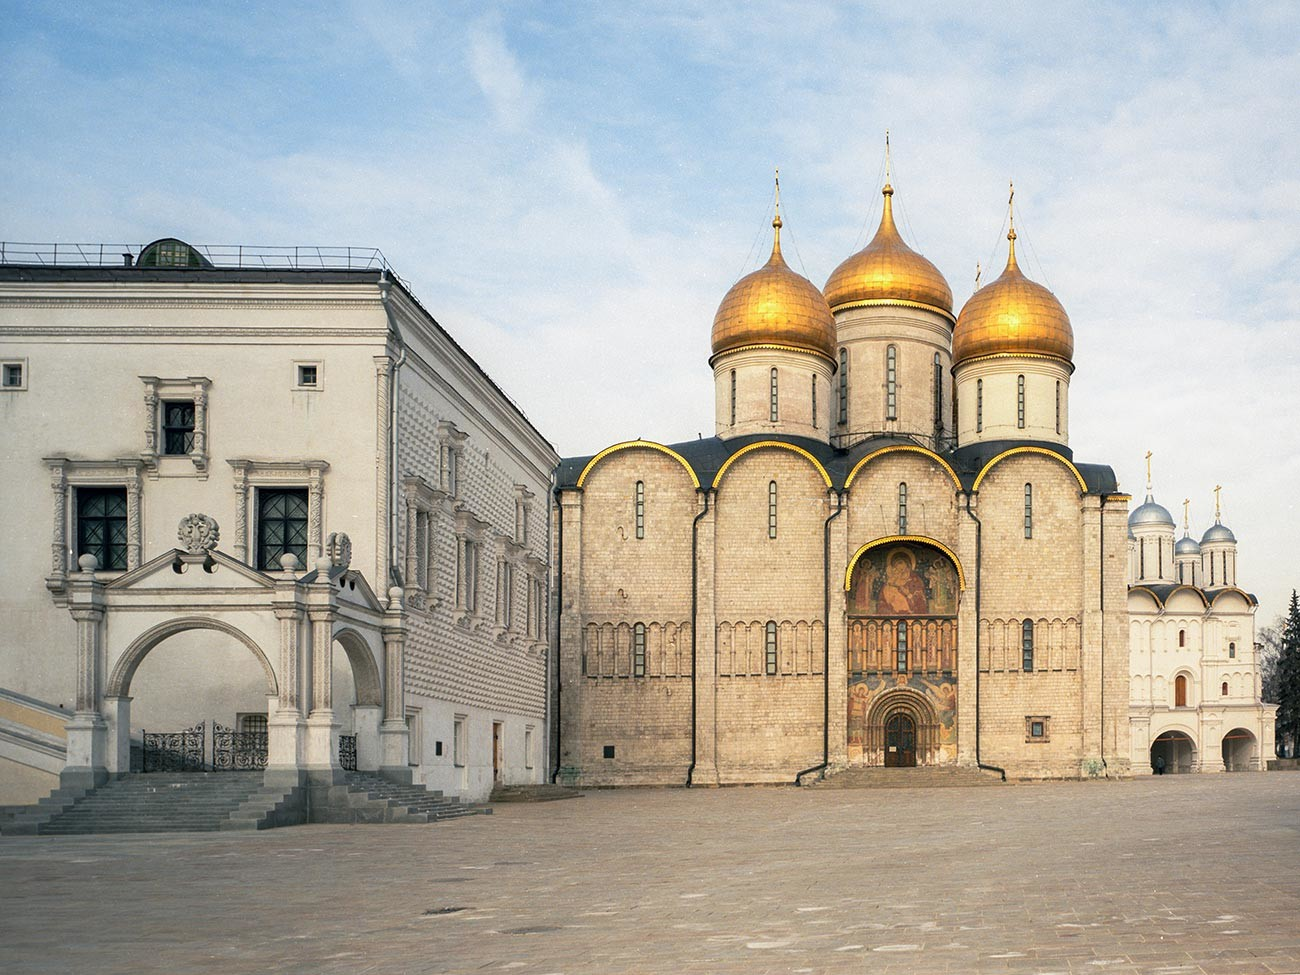 The Palace of Facets (L) and the Dormition Cathedral (R)